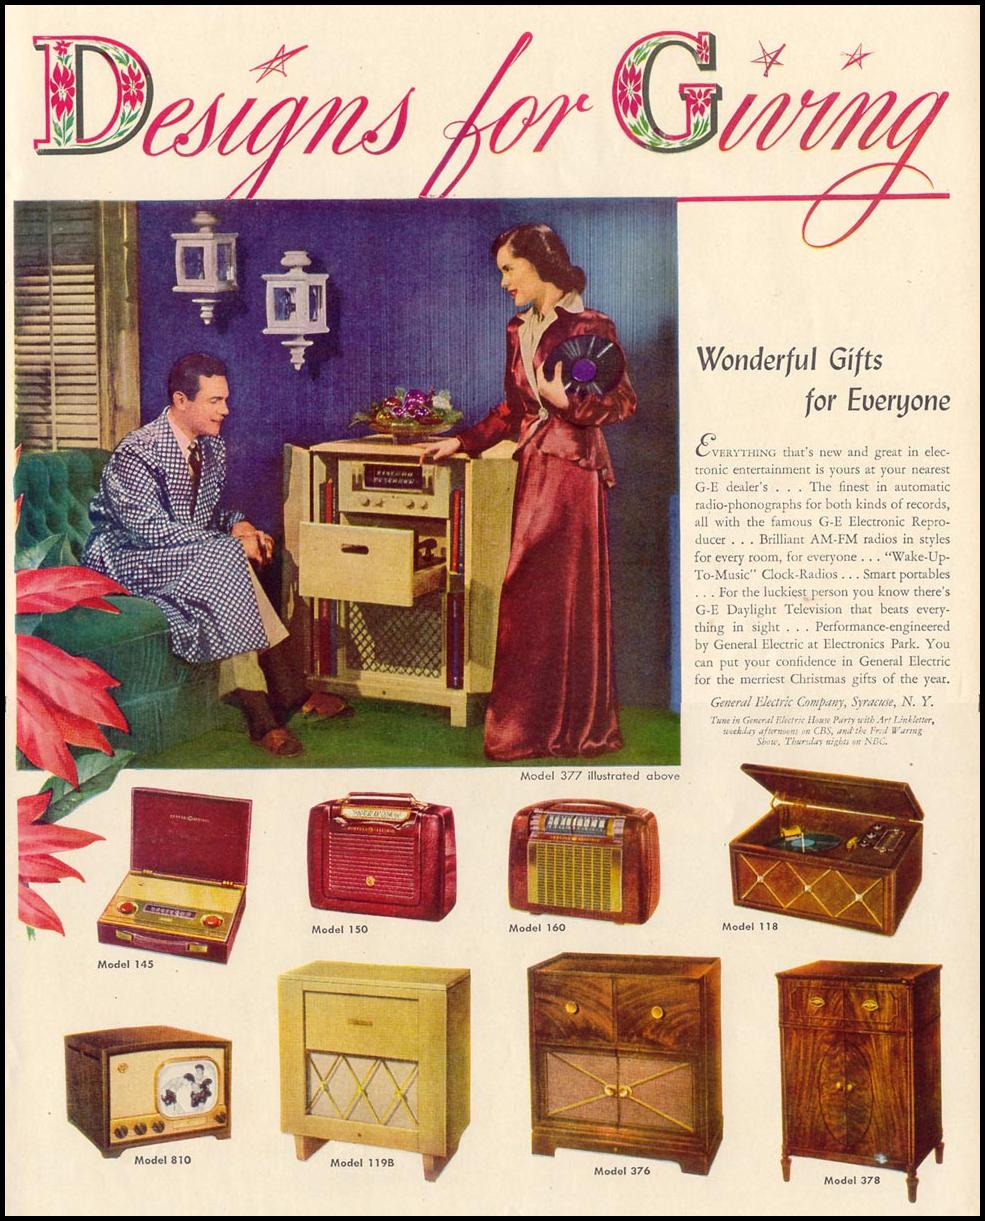 GENERAL ELECTRIC RADIOS AND TELEVISIONS LIFE 11/15/1948